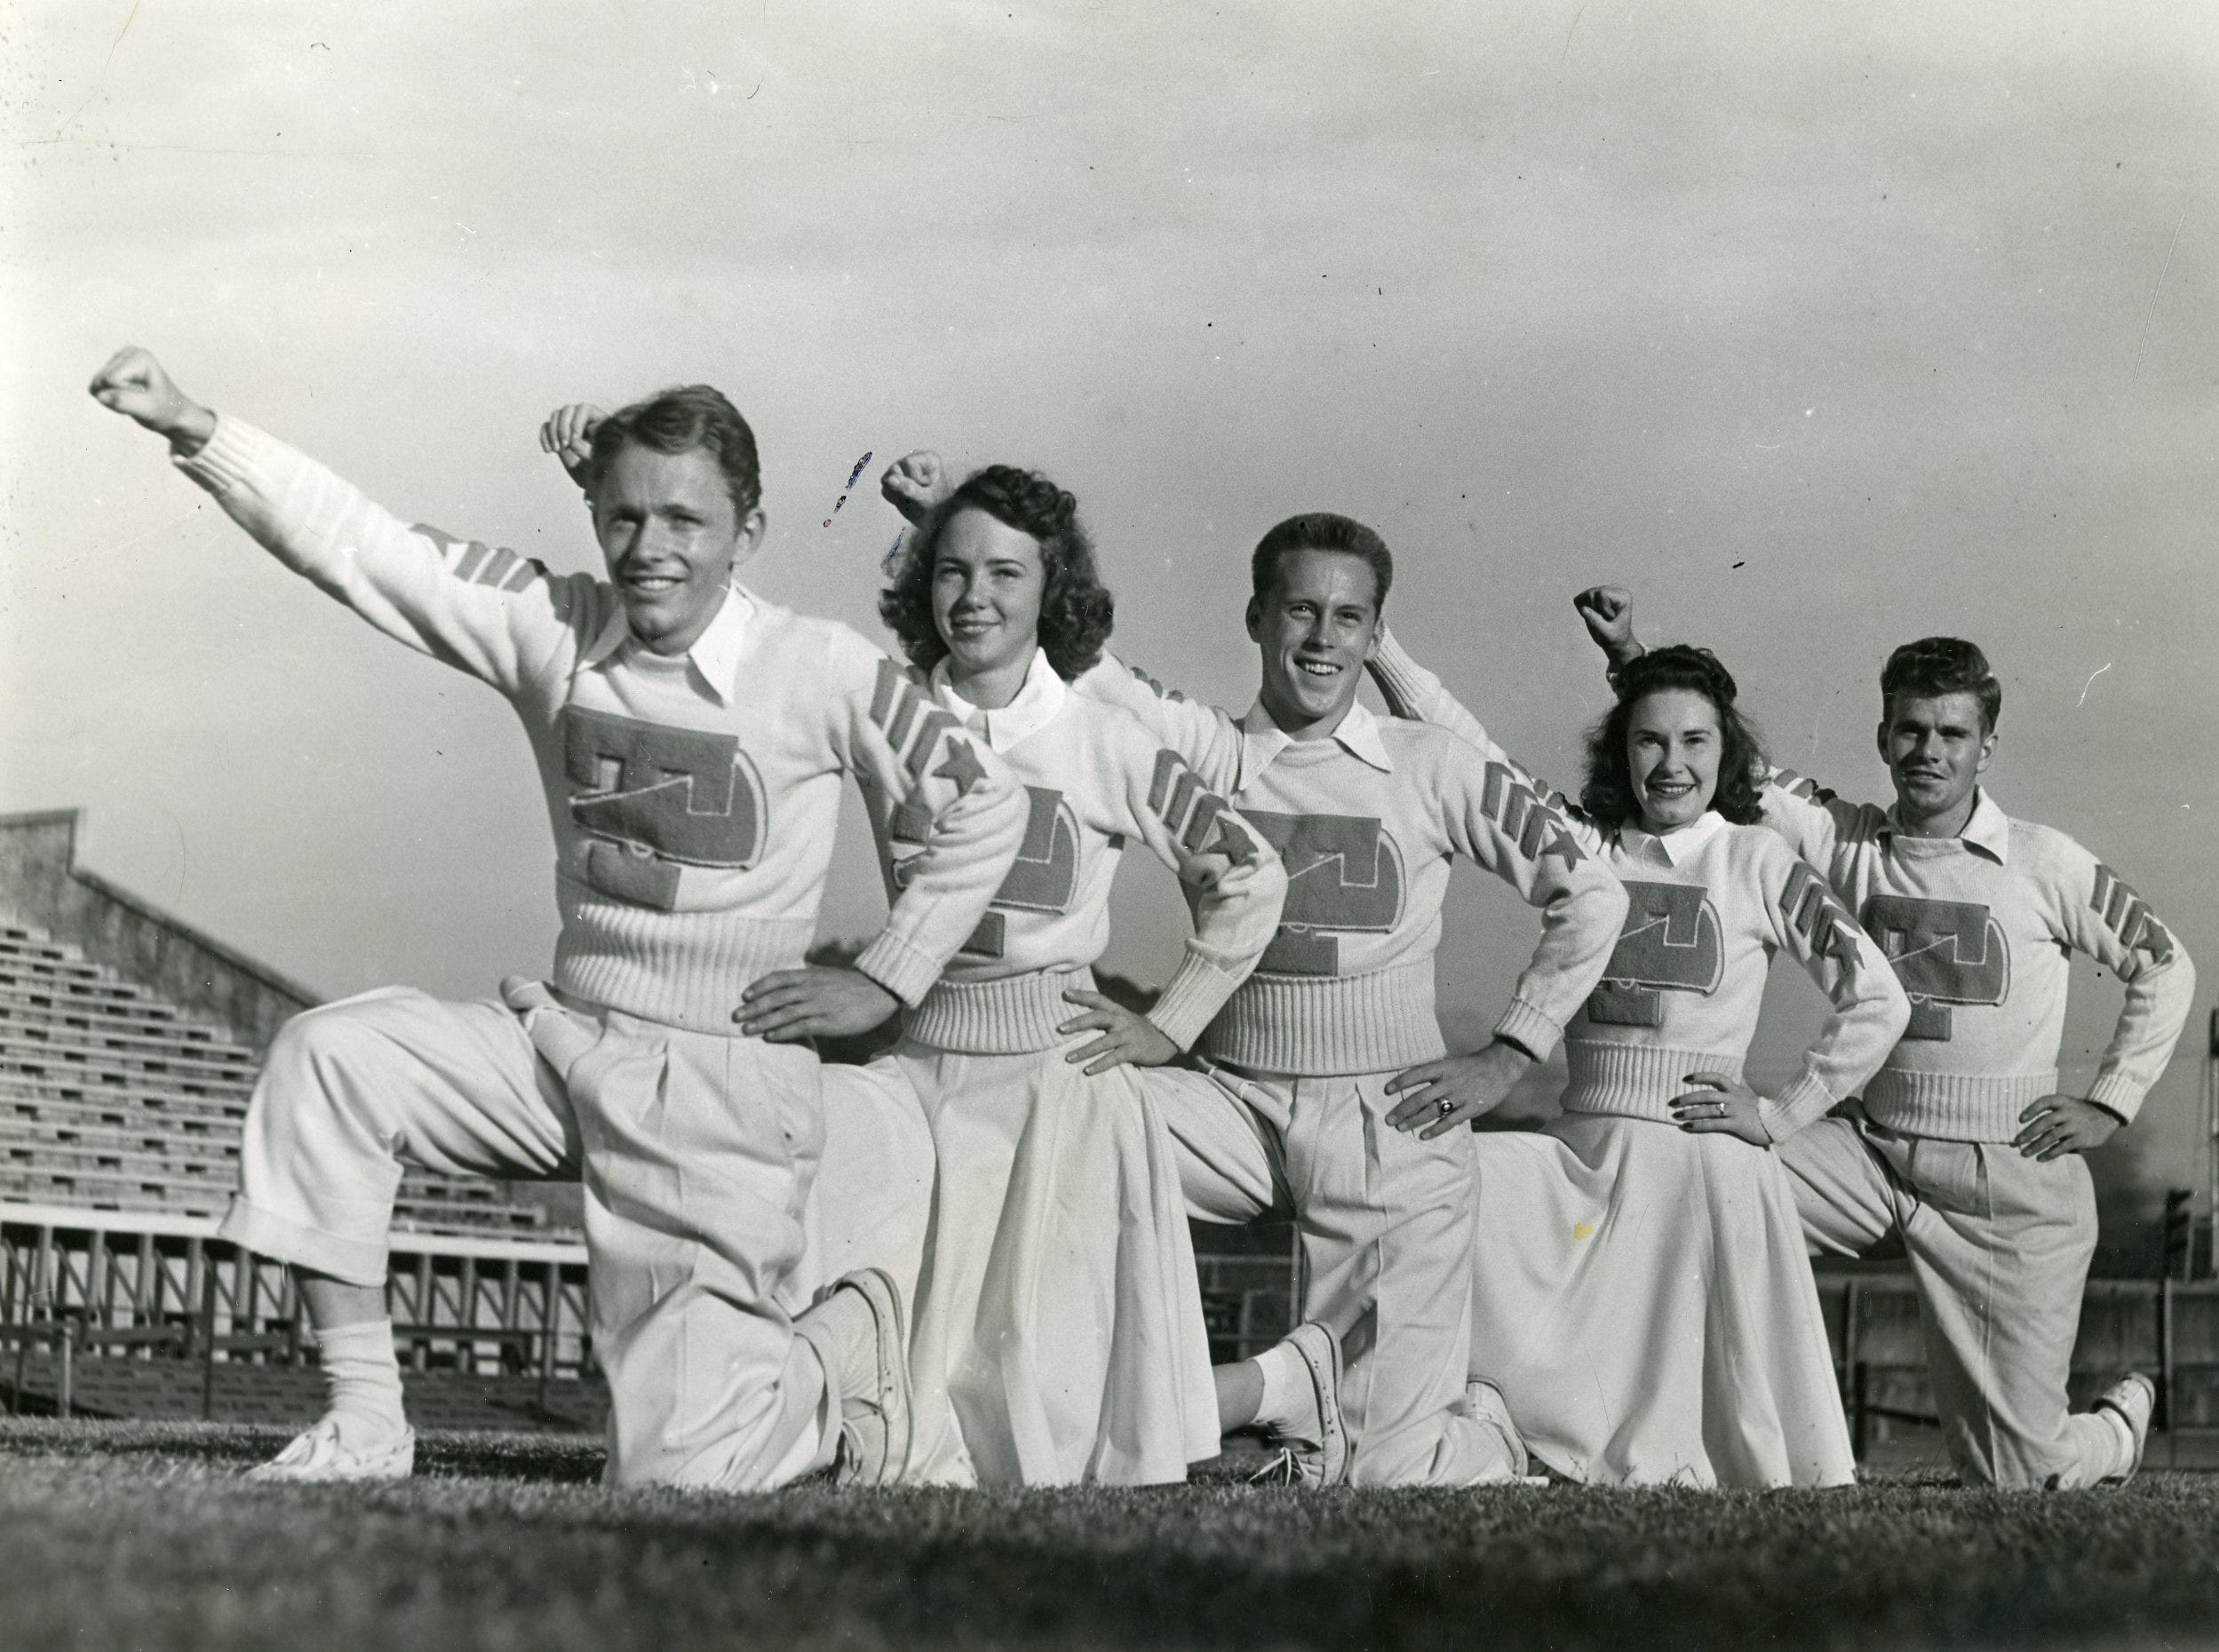 UT cheerleaders Kyle Crowther, Helen Childs, I.T. Sliger, Peggy Roberts and Bill Killian, October, 1941.